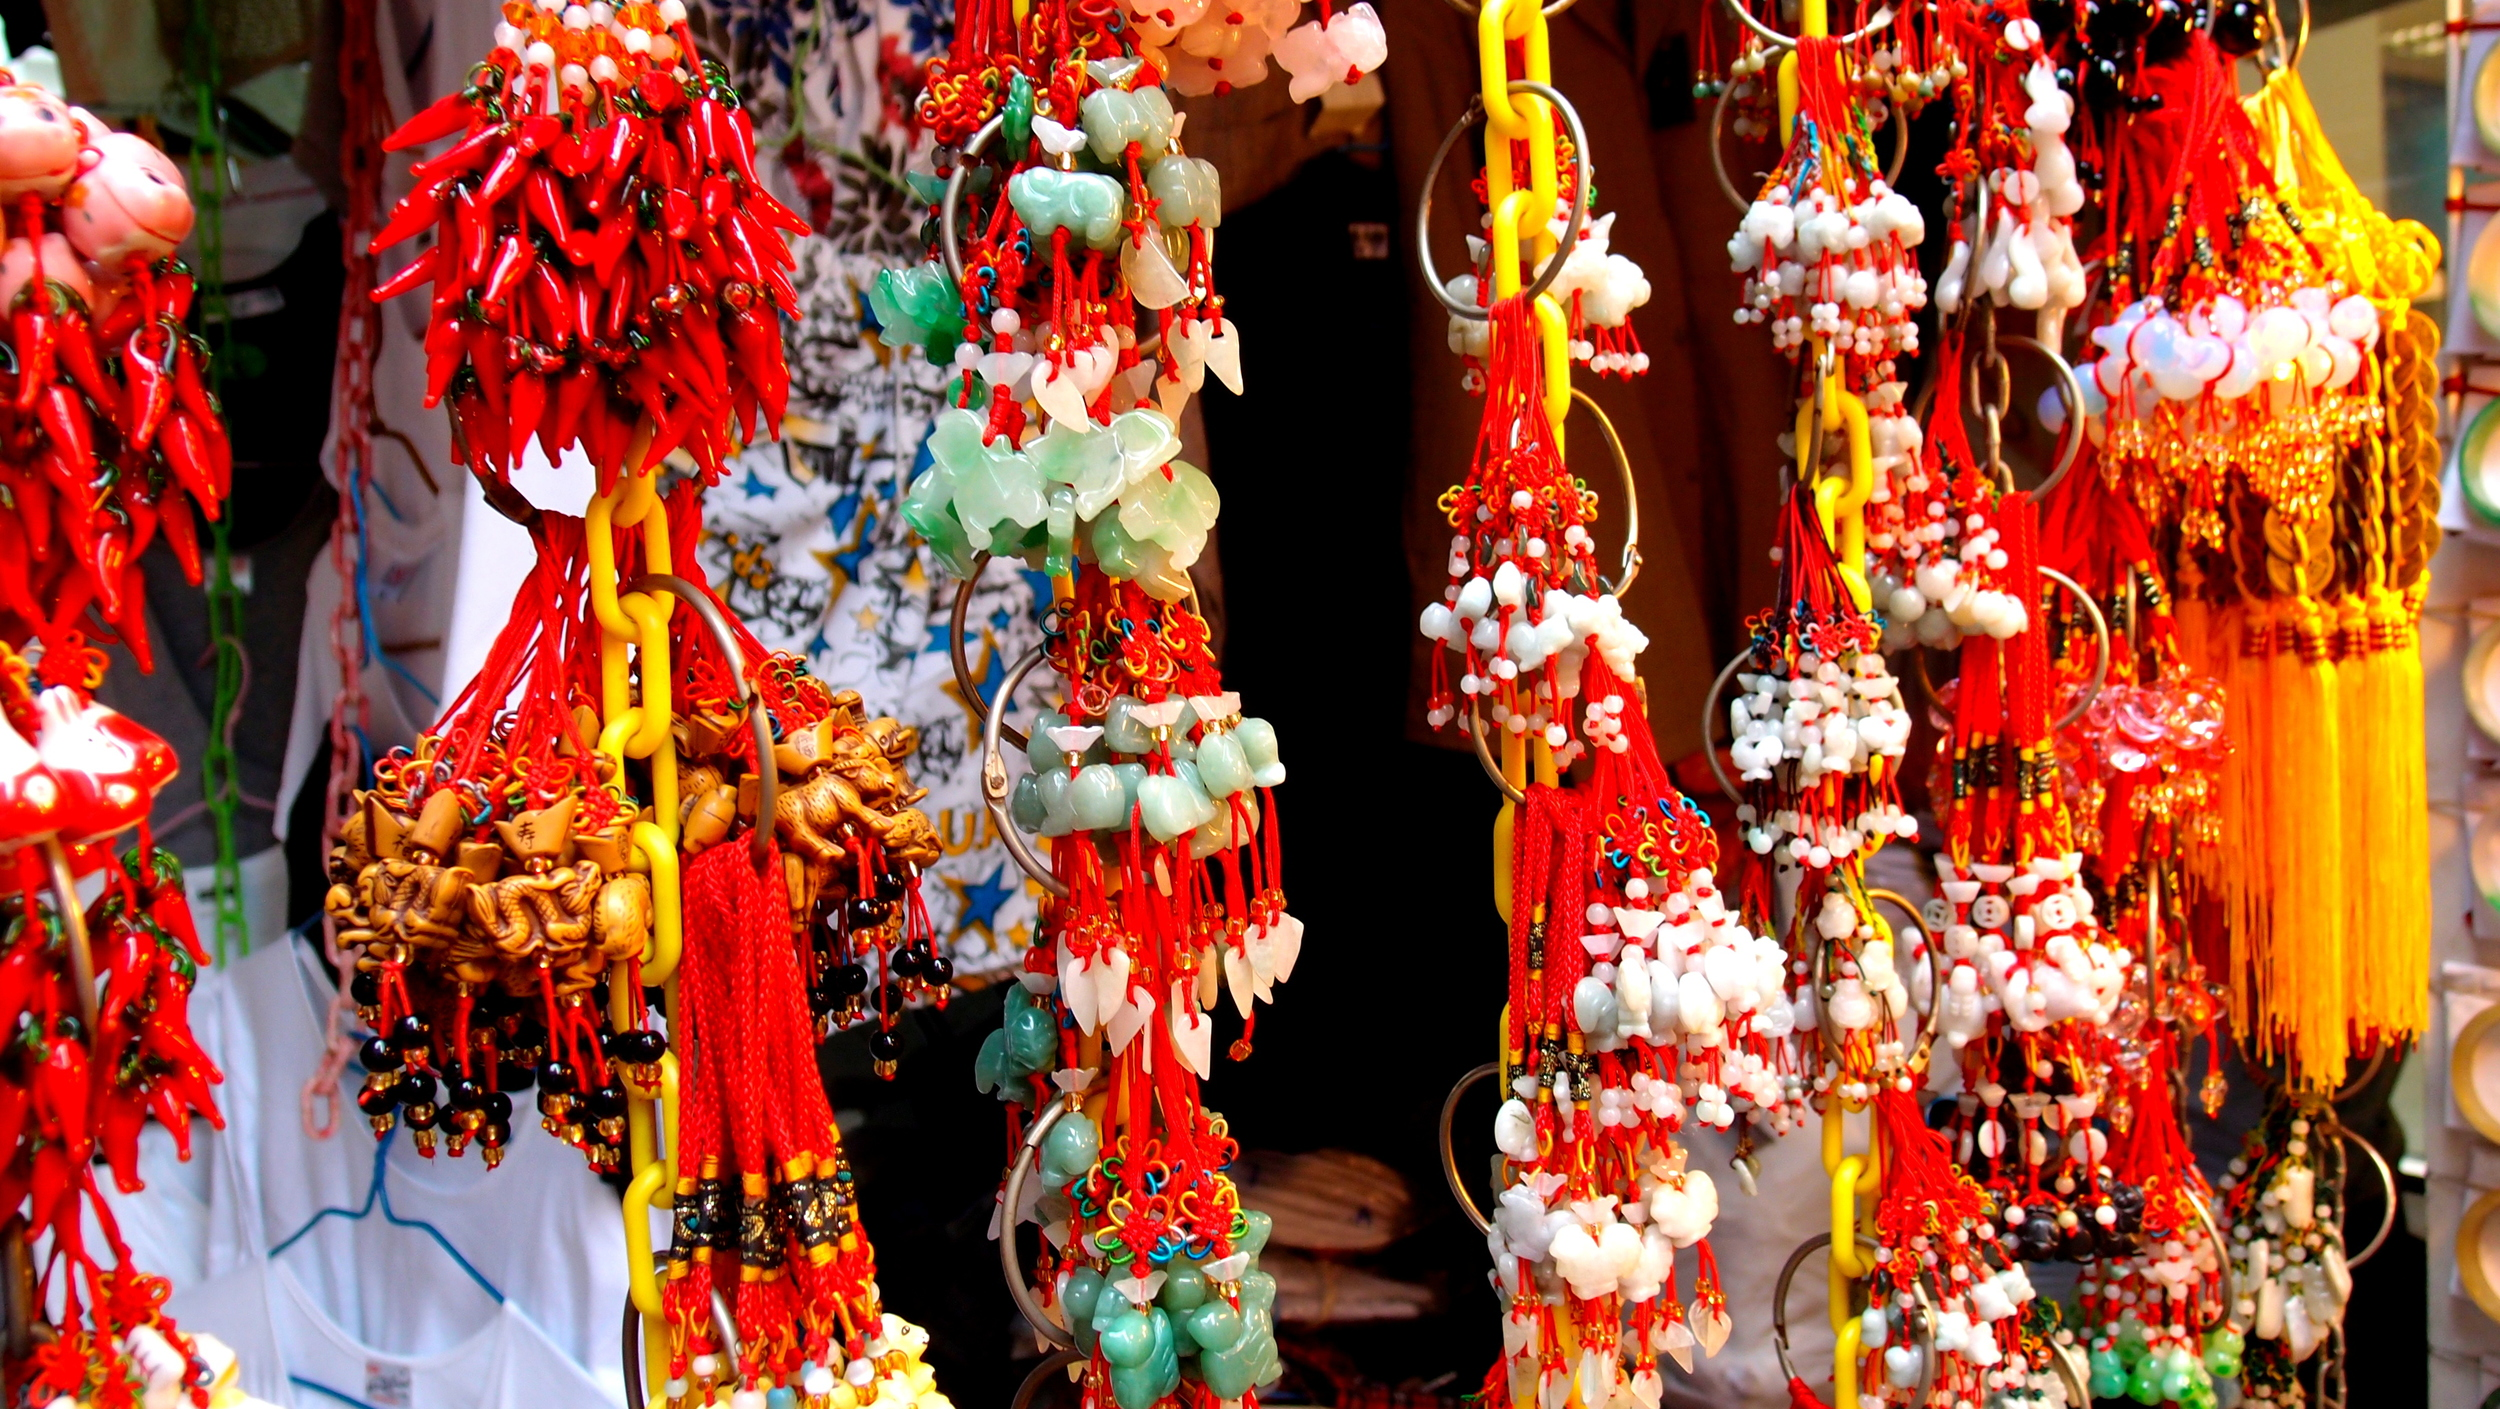 Typical trinkets on sale at markets